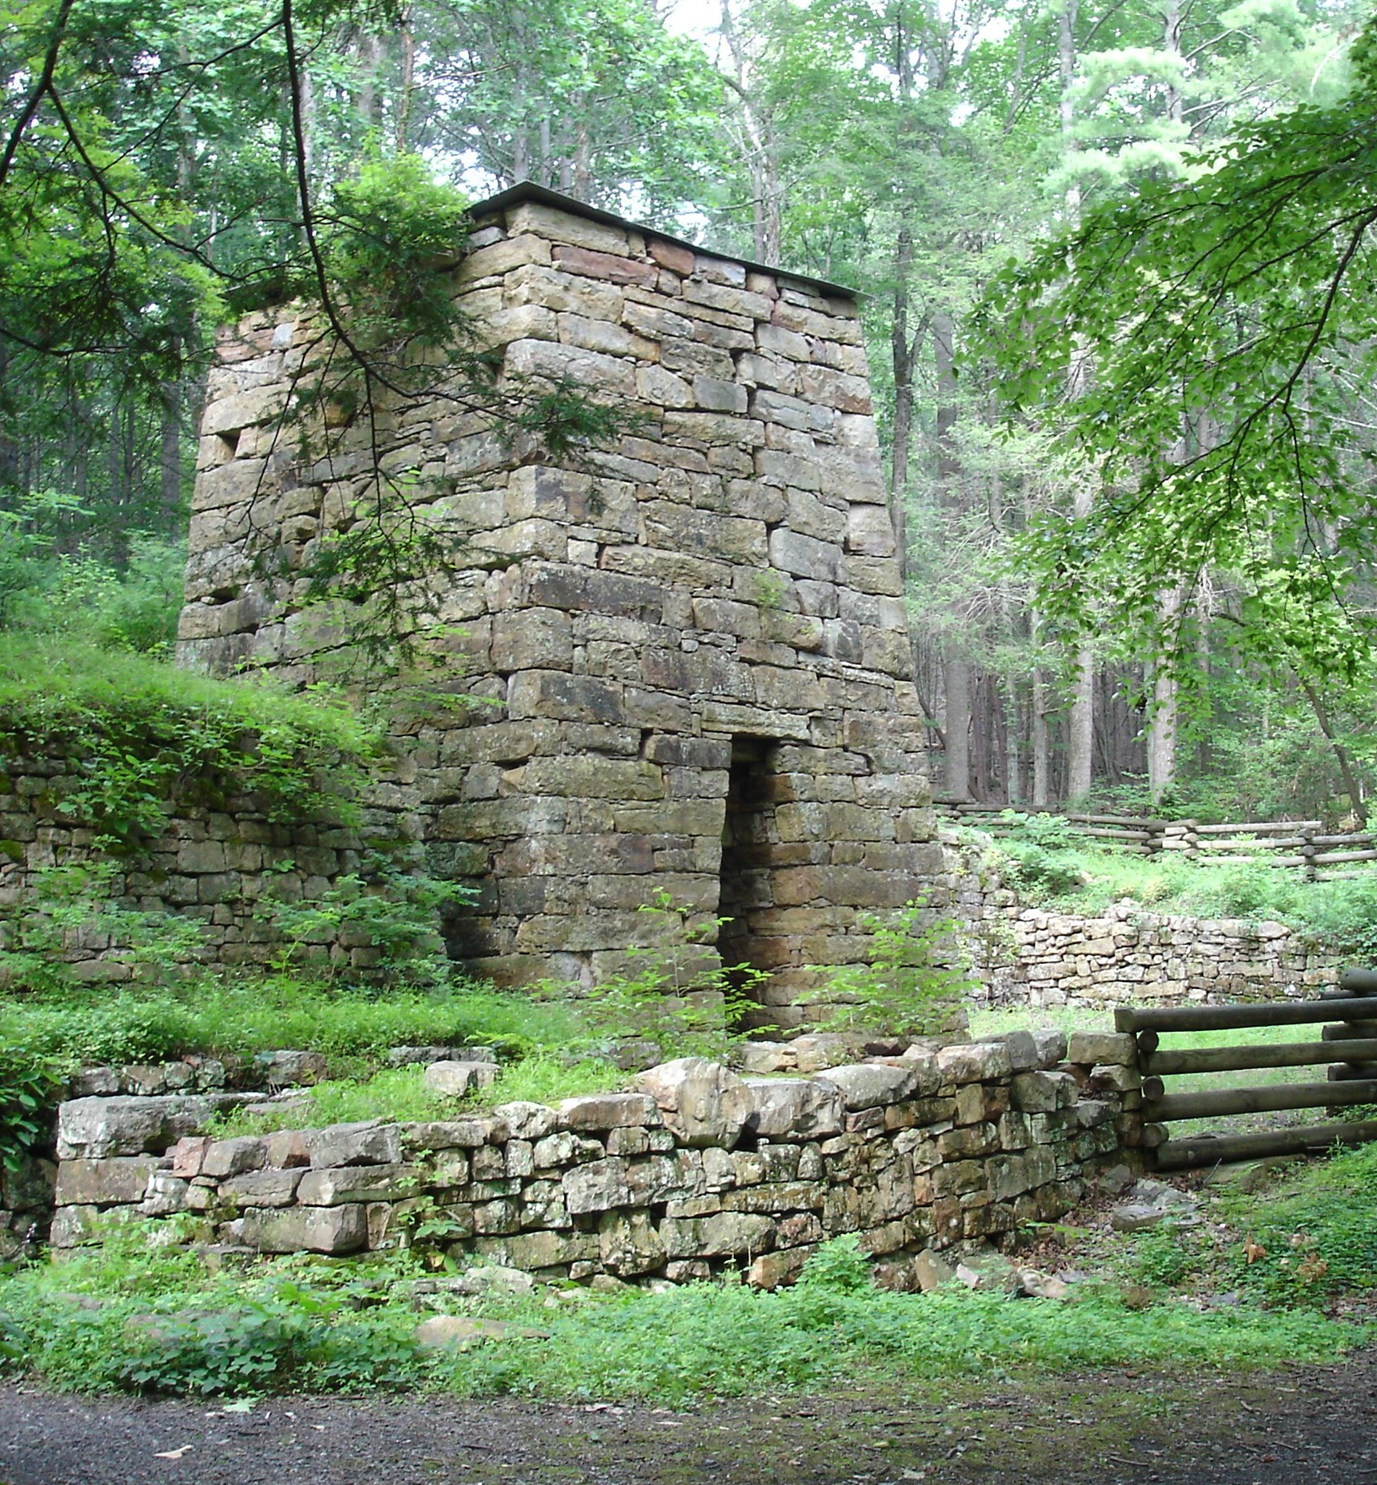 Historic Iron furnace in a wooded setting